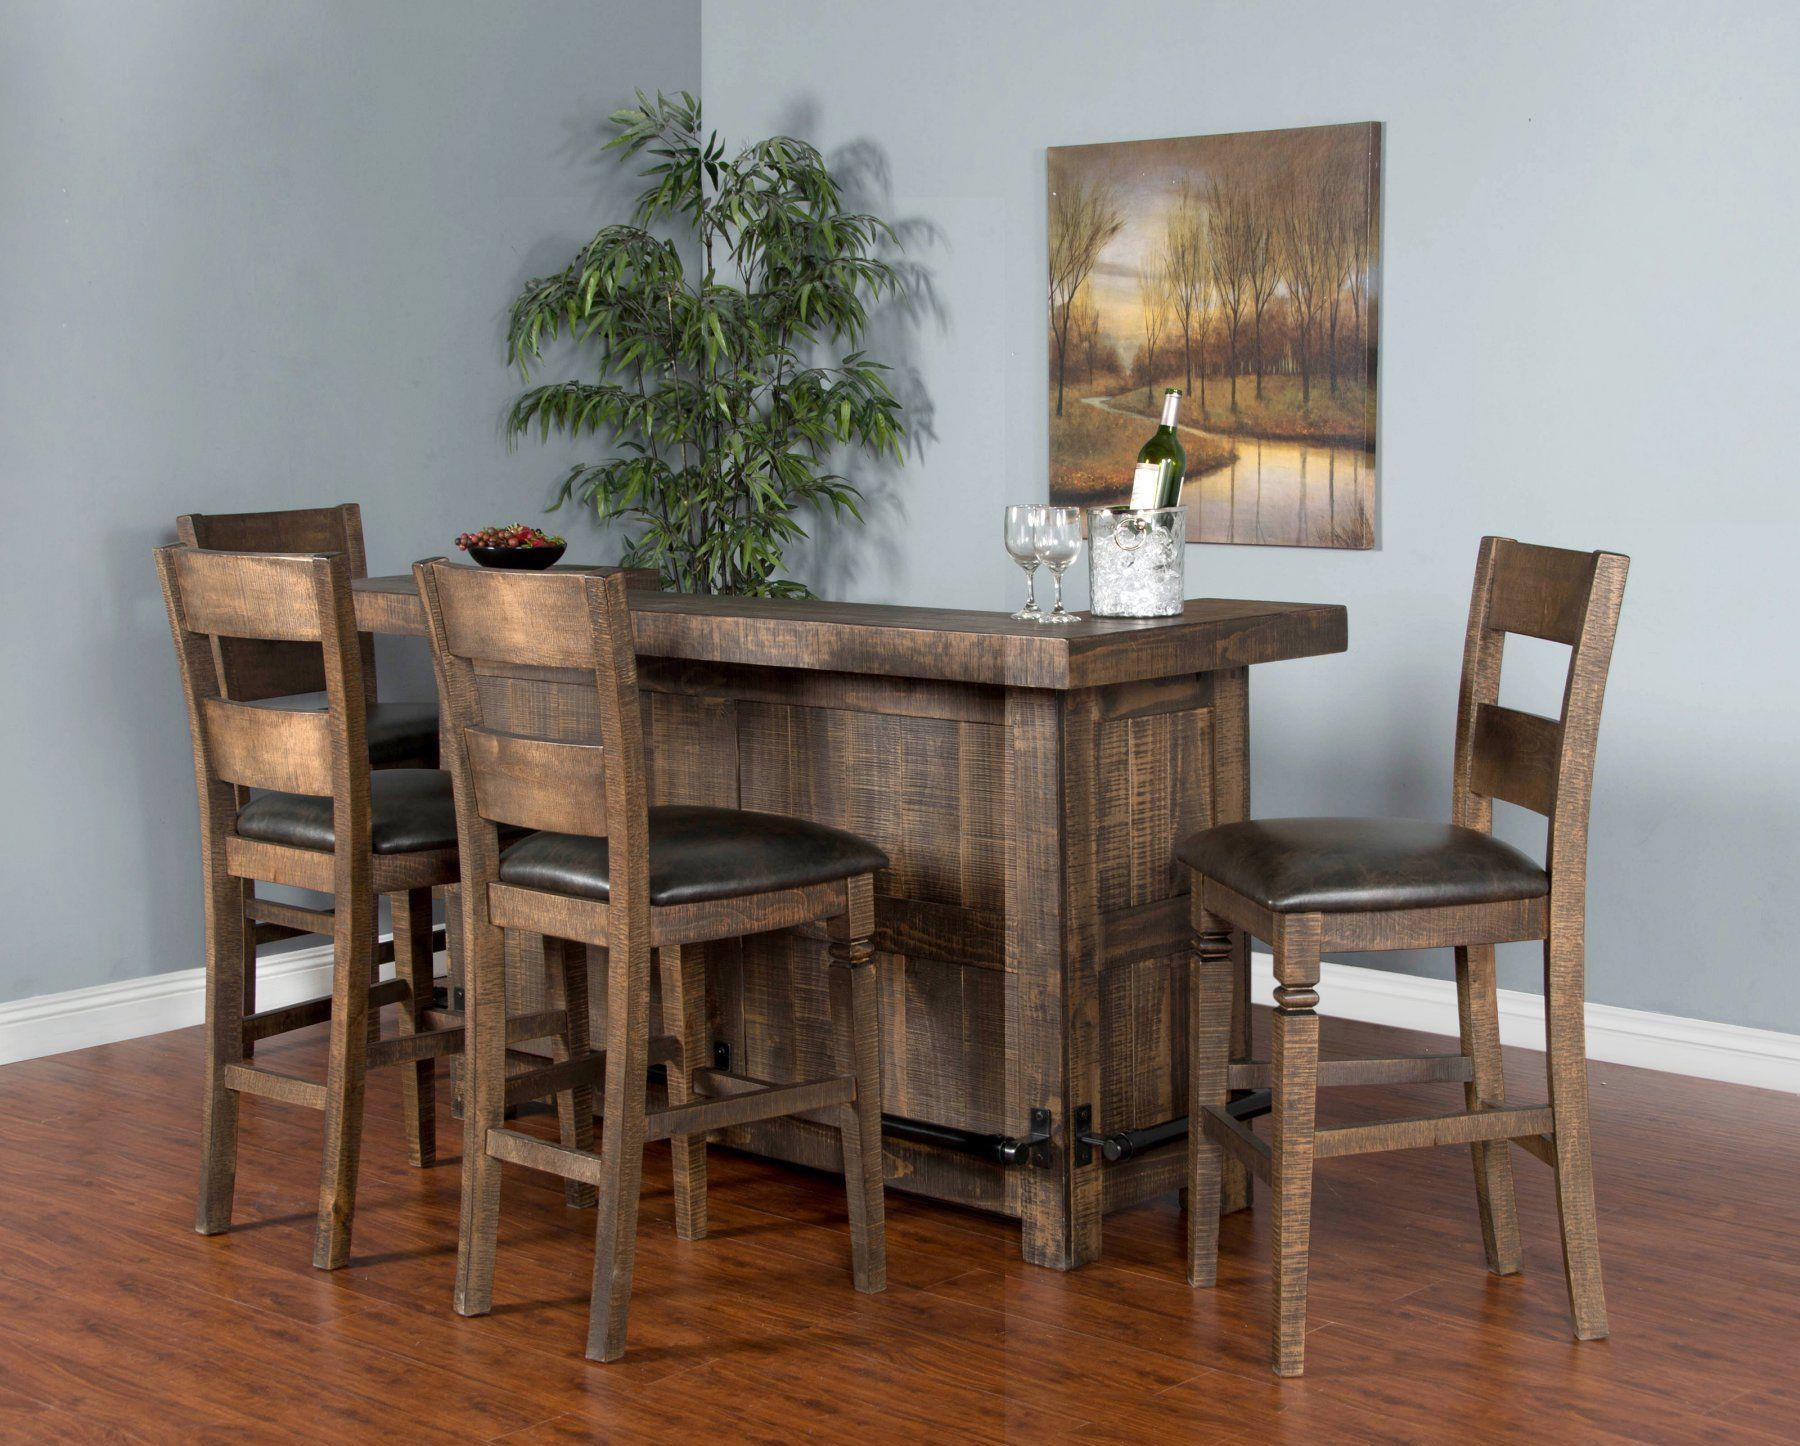 Thatcher Thatcher 4-Piece Bar Set with Bar and 2 Stoo by Sunny Designs at Morris Home